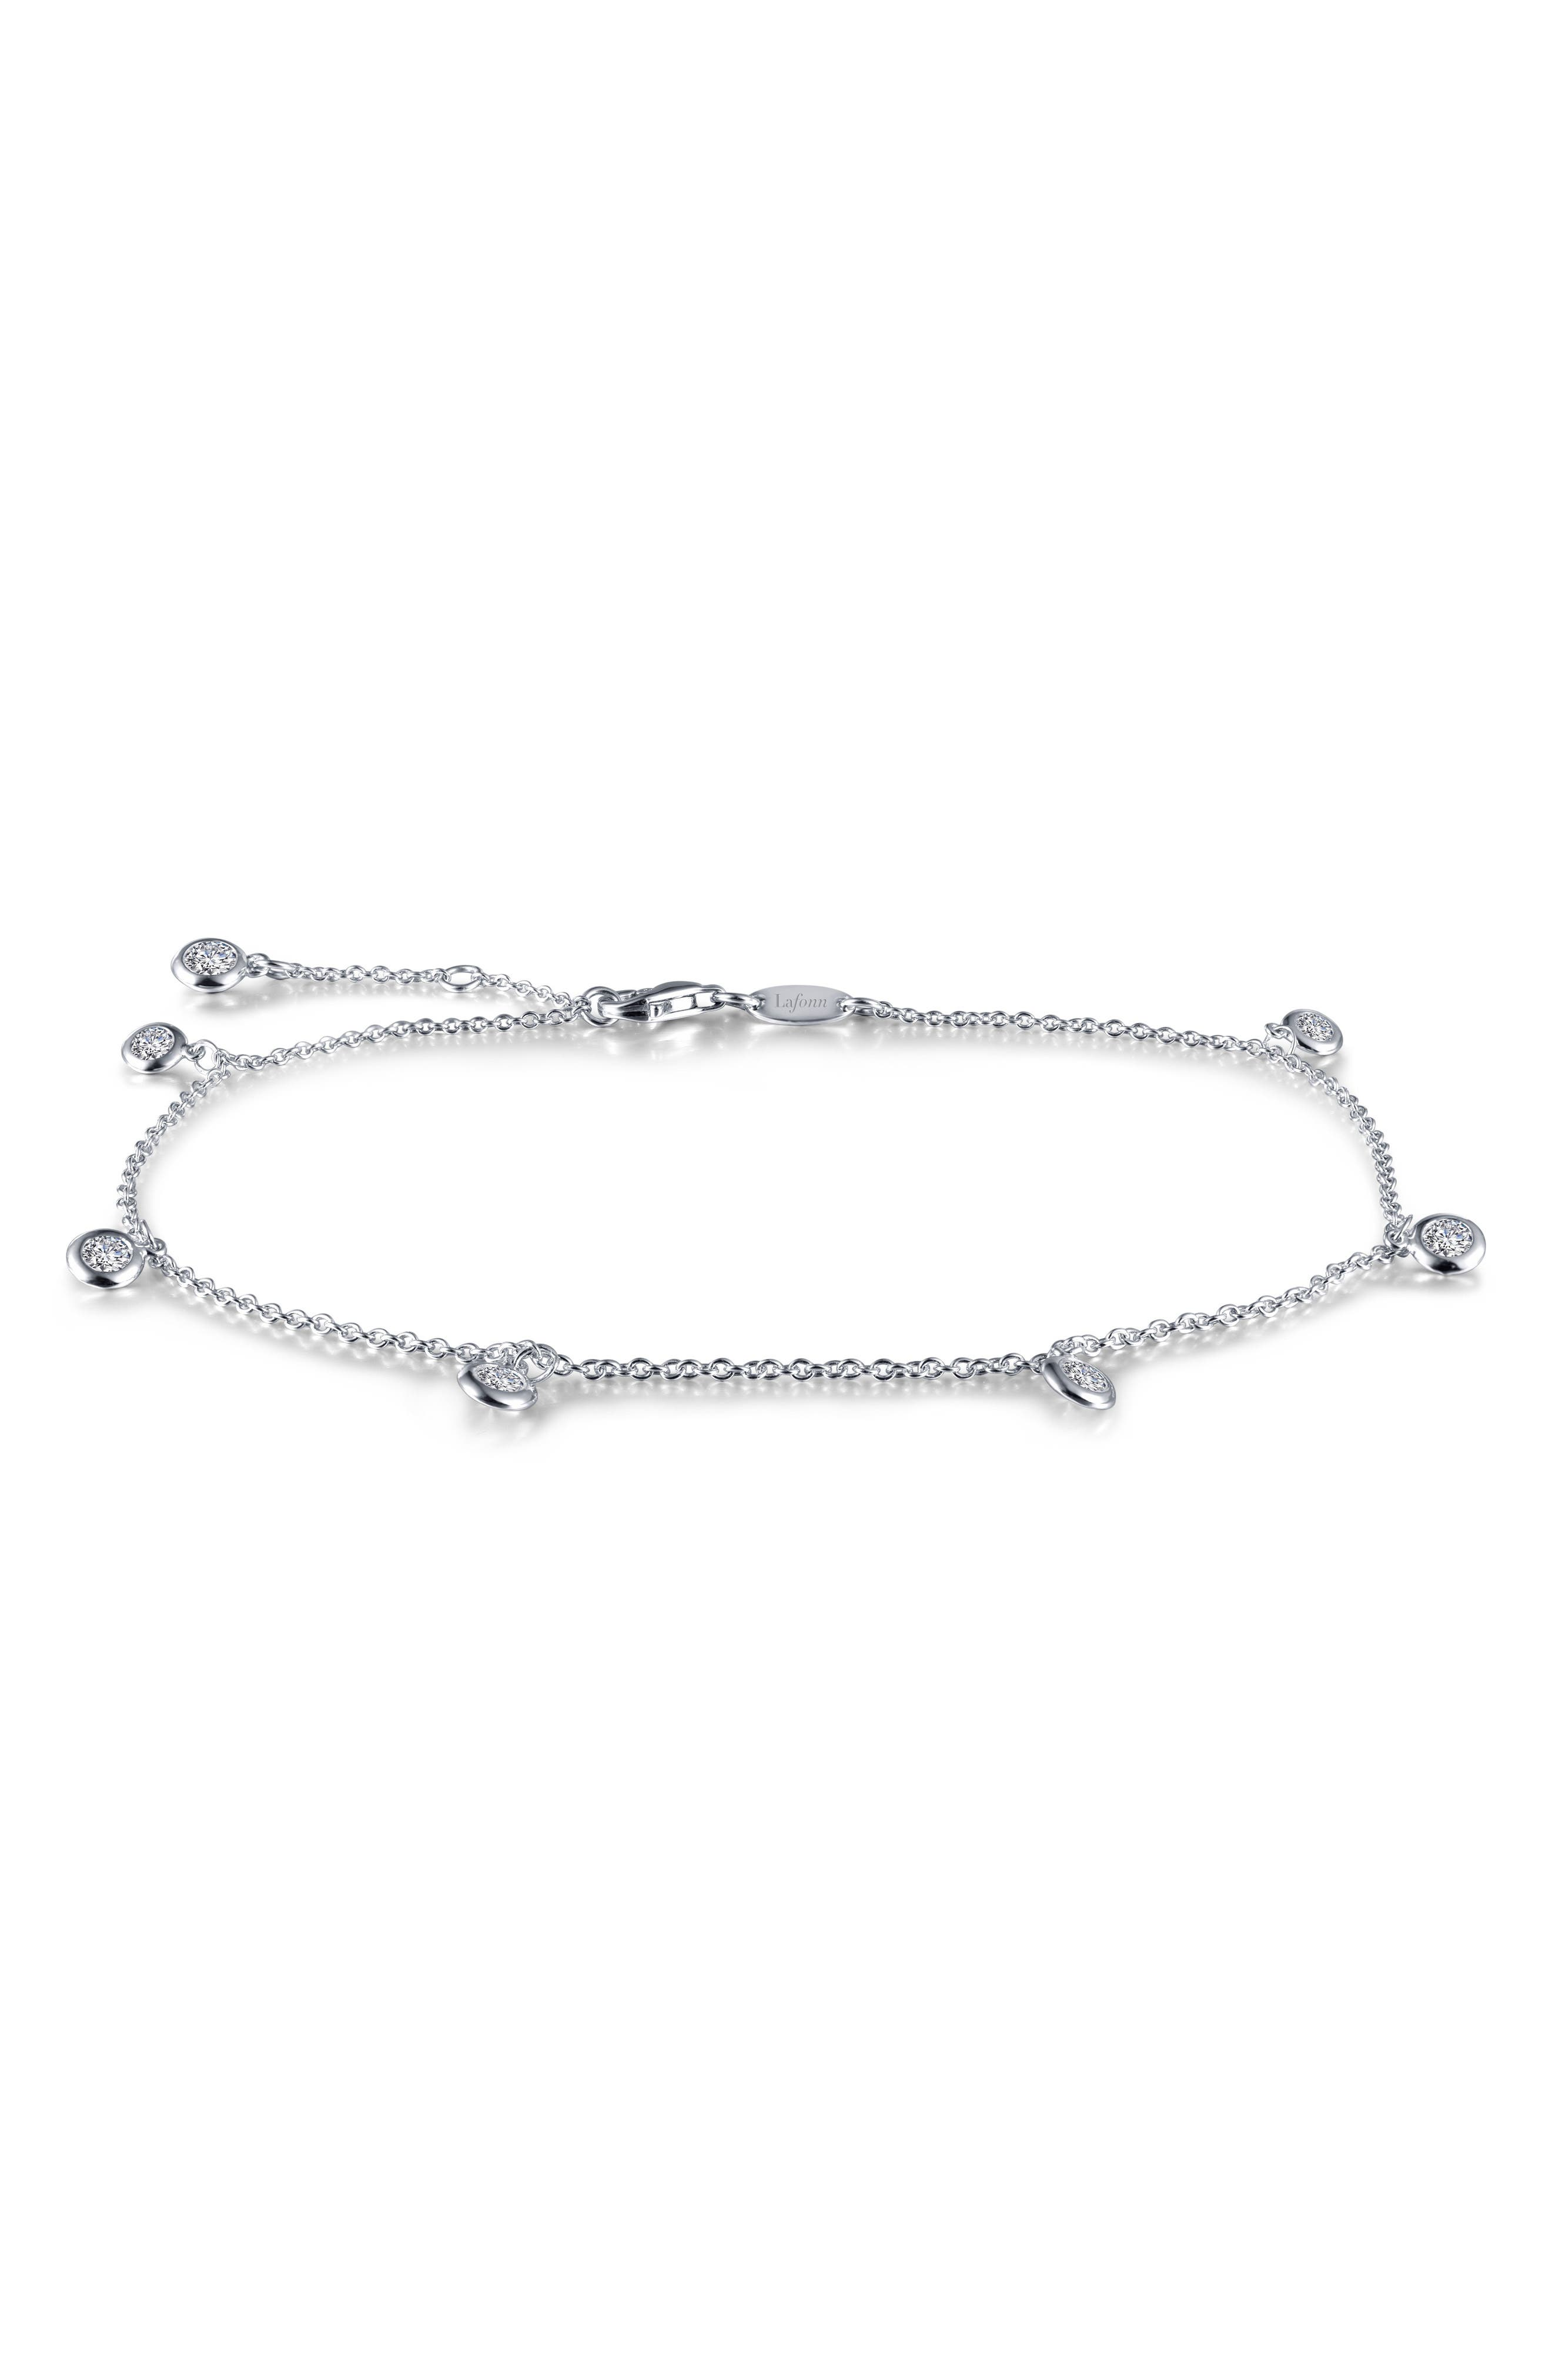 Dangling Simulated Diamond Anklet,                         Main,                         color, Silver/ Clear